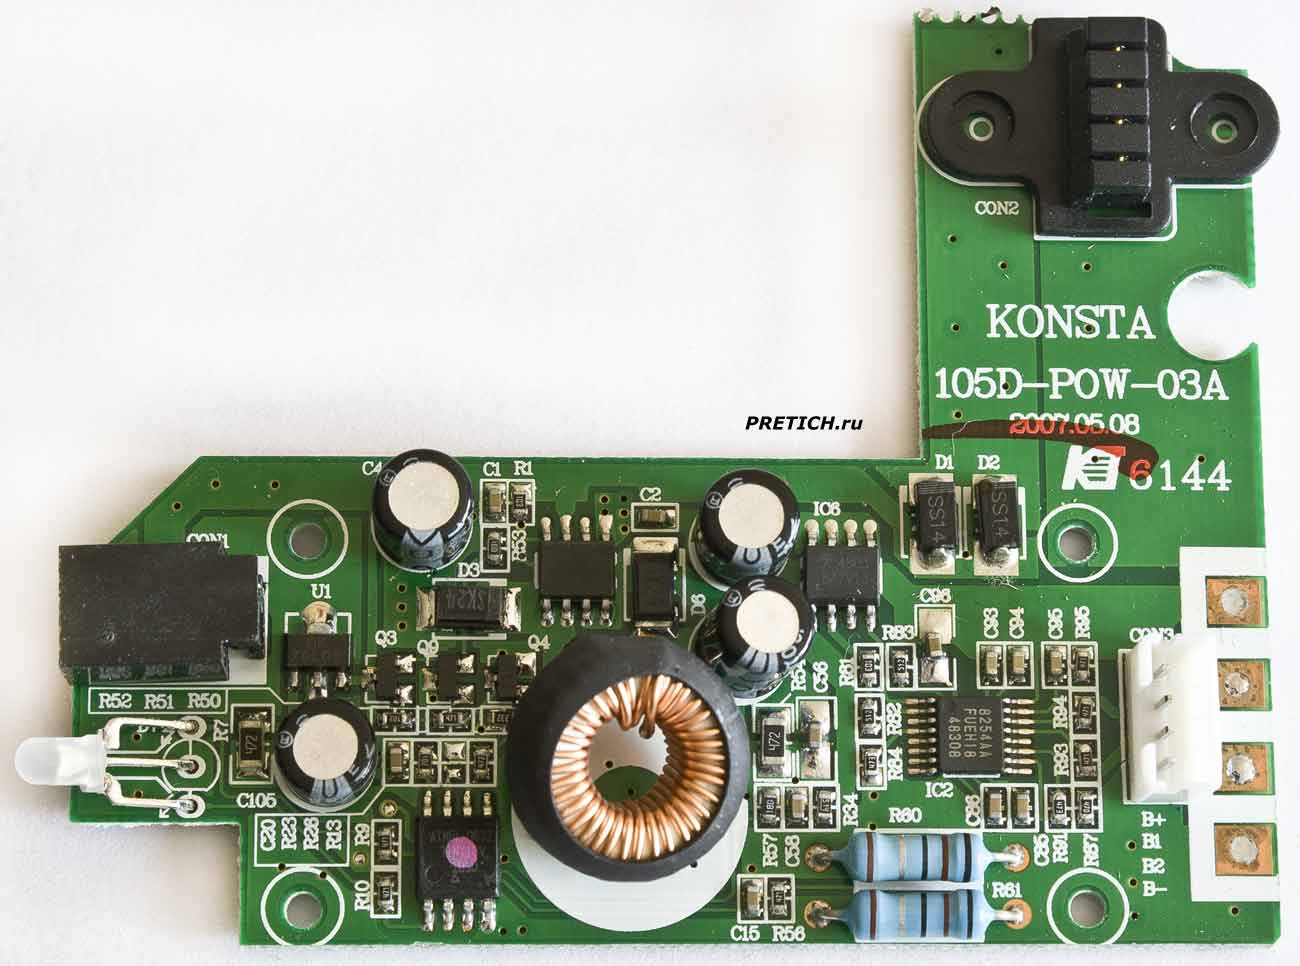 KONSTA 105D-POW-03A контроллер Intelligent LI-ION Battery